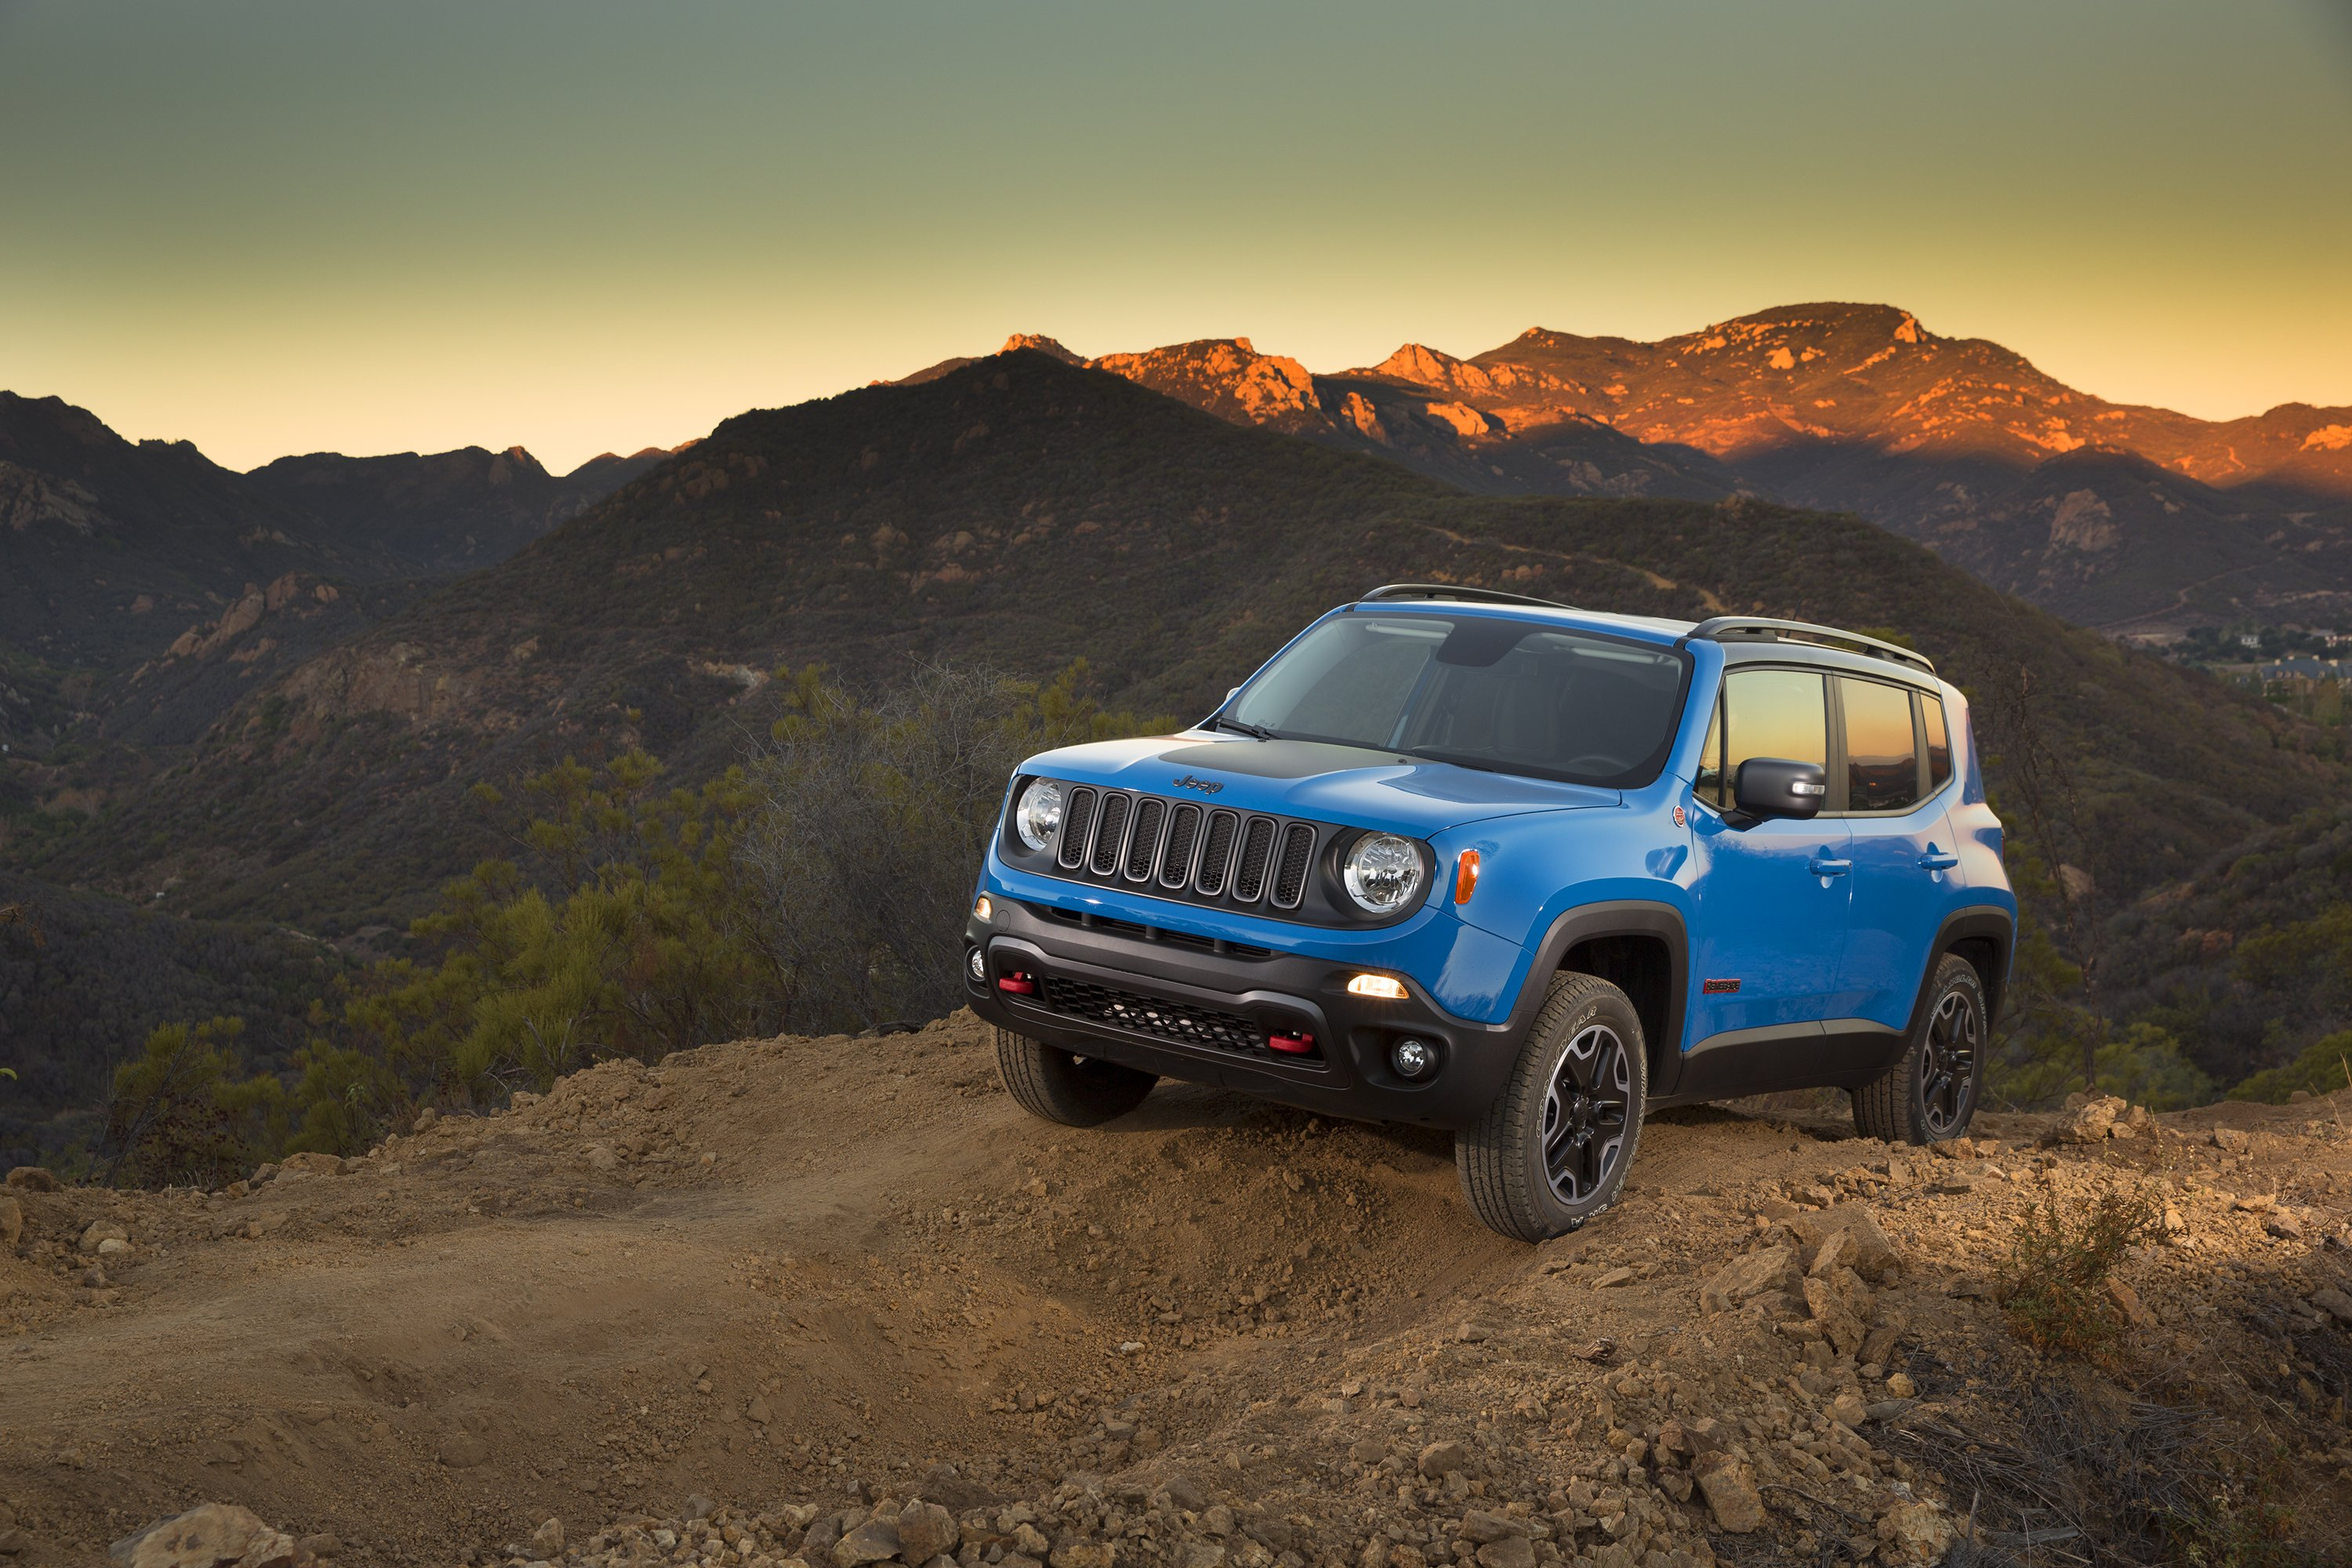 2015 jeep renegade trailhawk suv 4x4 wallpaper 3000x2000 618831 wallpaperup. Black Bedroom Furniture Sets. Home Design Ideas